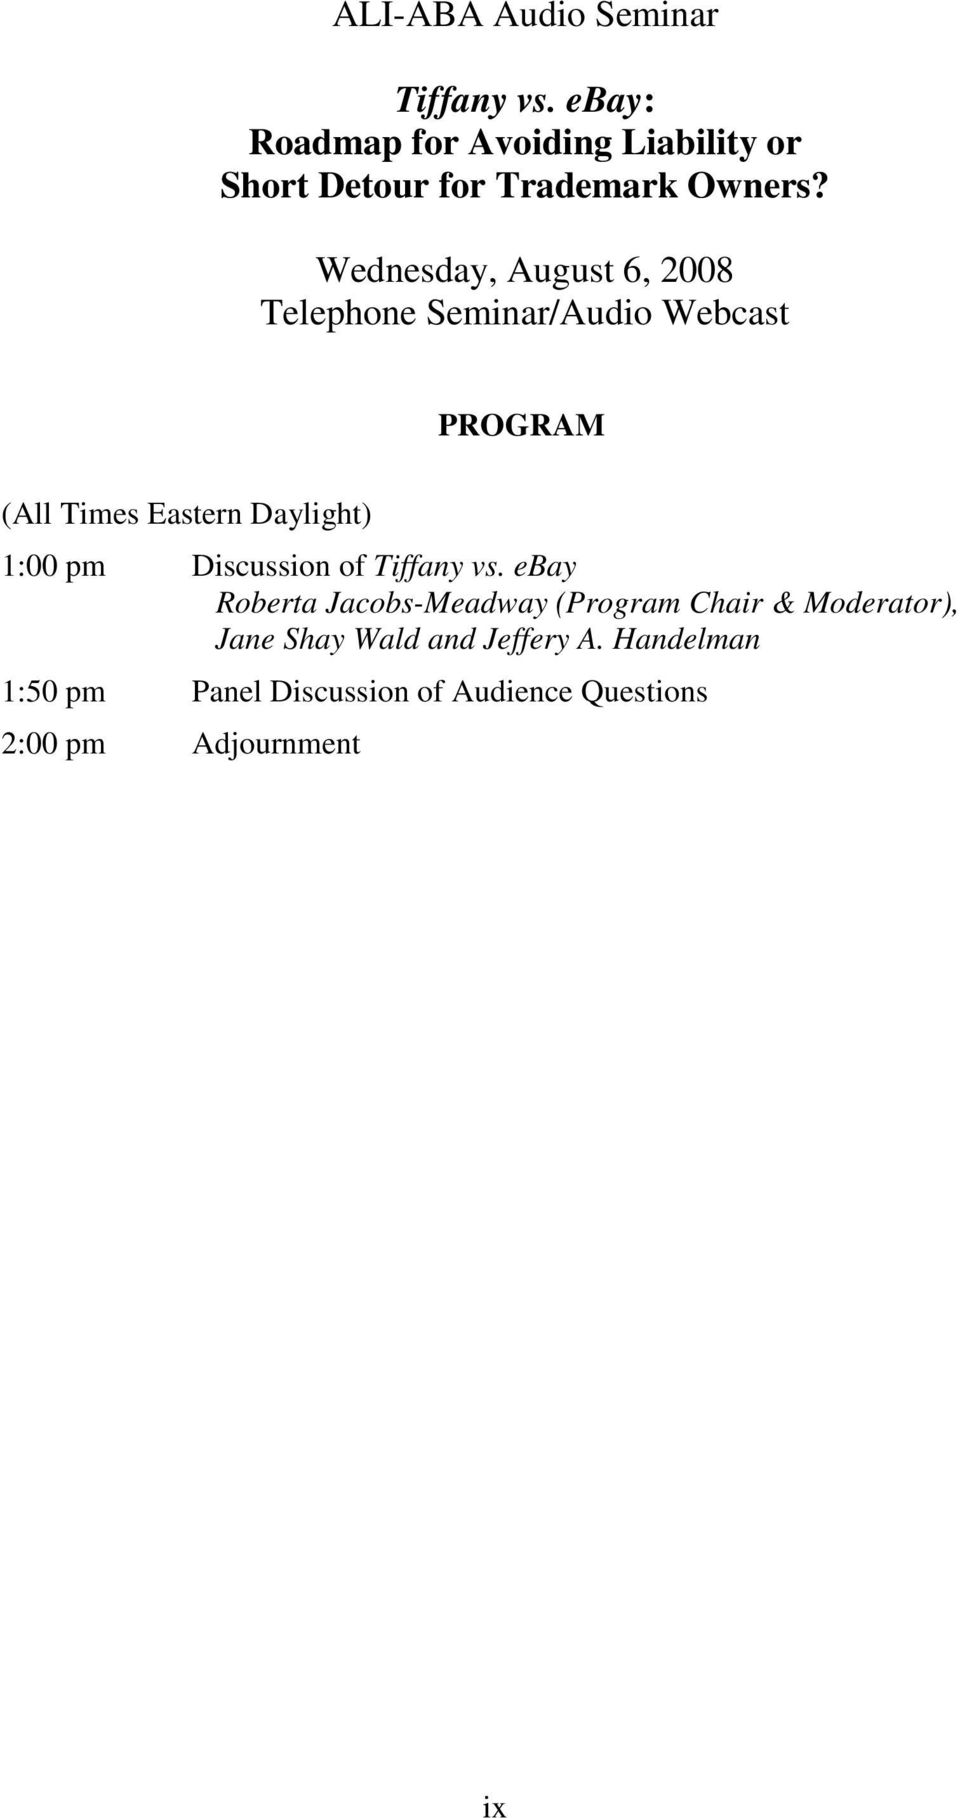 Wednesday, August 6, 2008 Telephone Seminar/Audio Webcast PROGRAM (All Times Eastern Daylight) 1:00